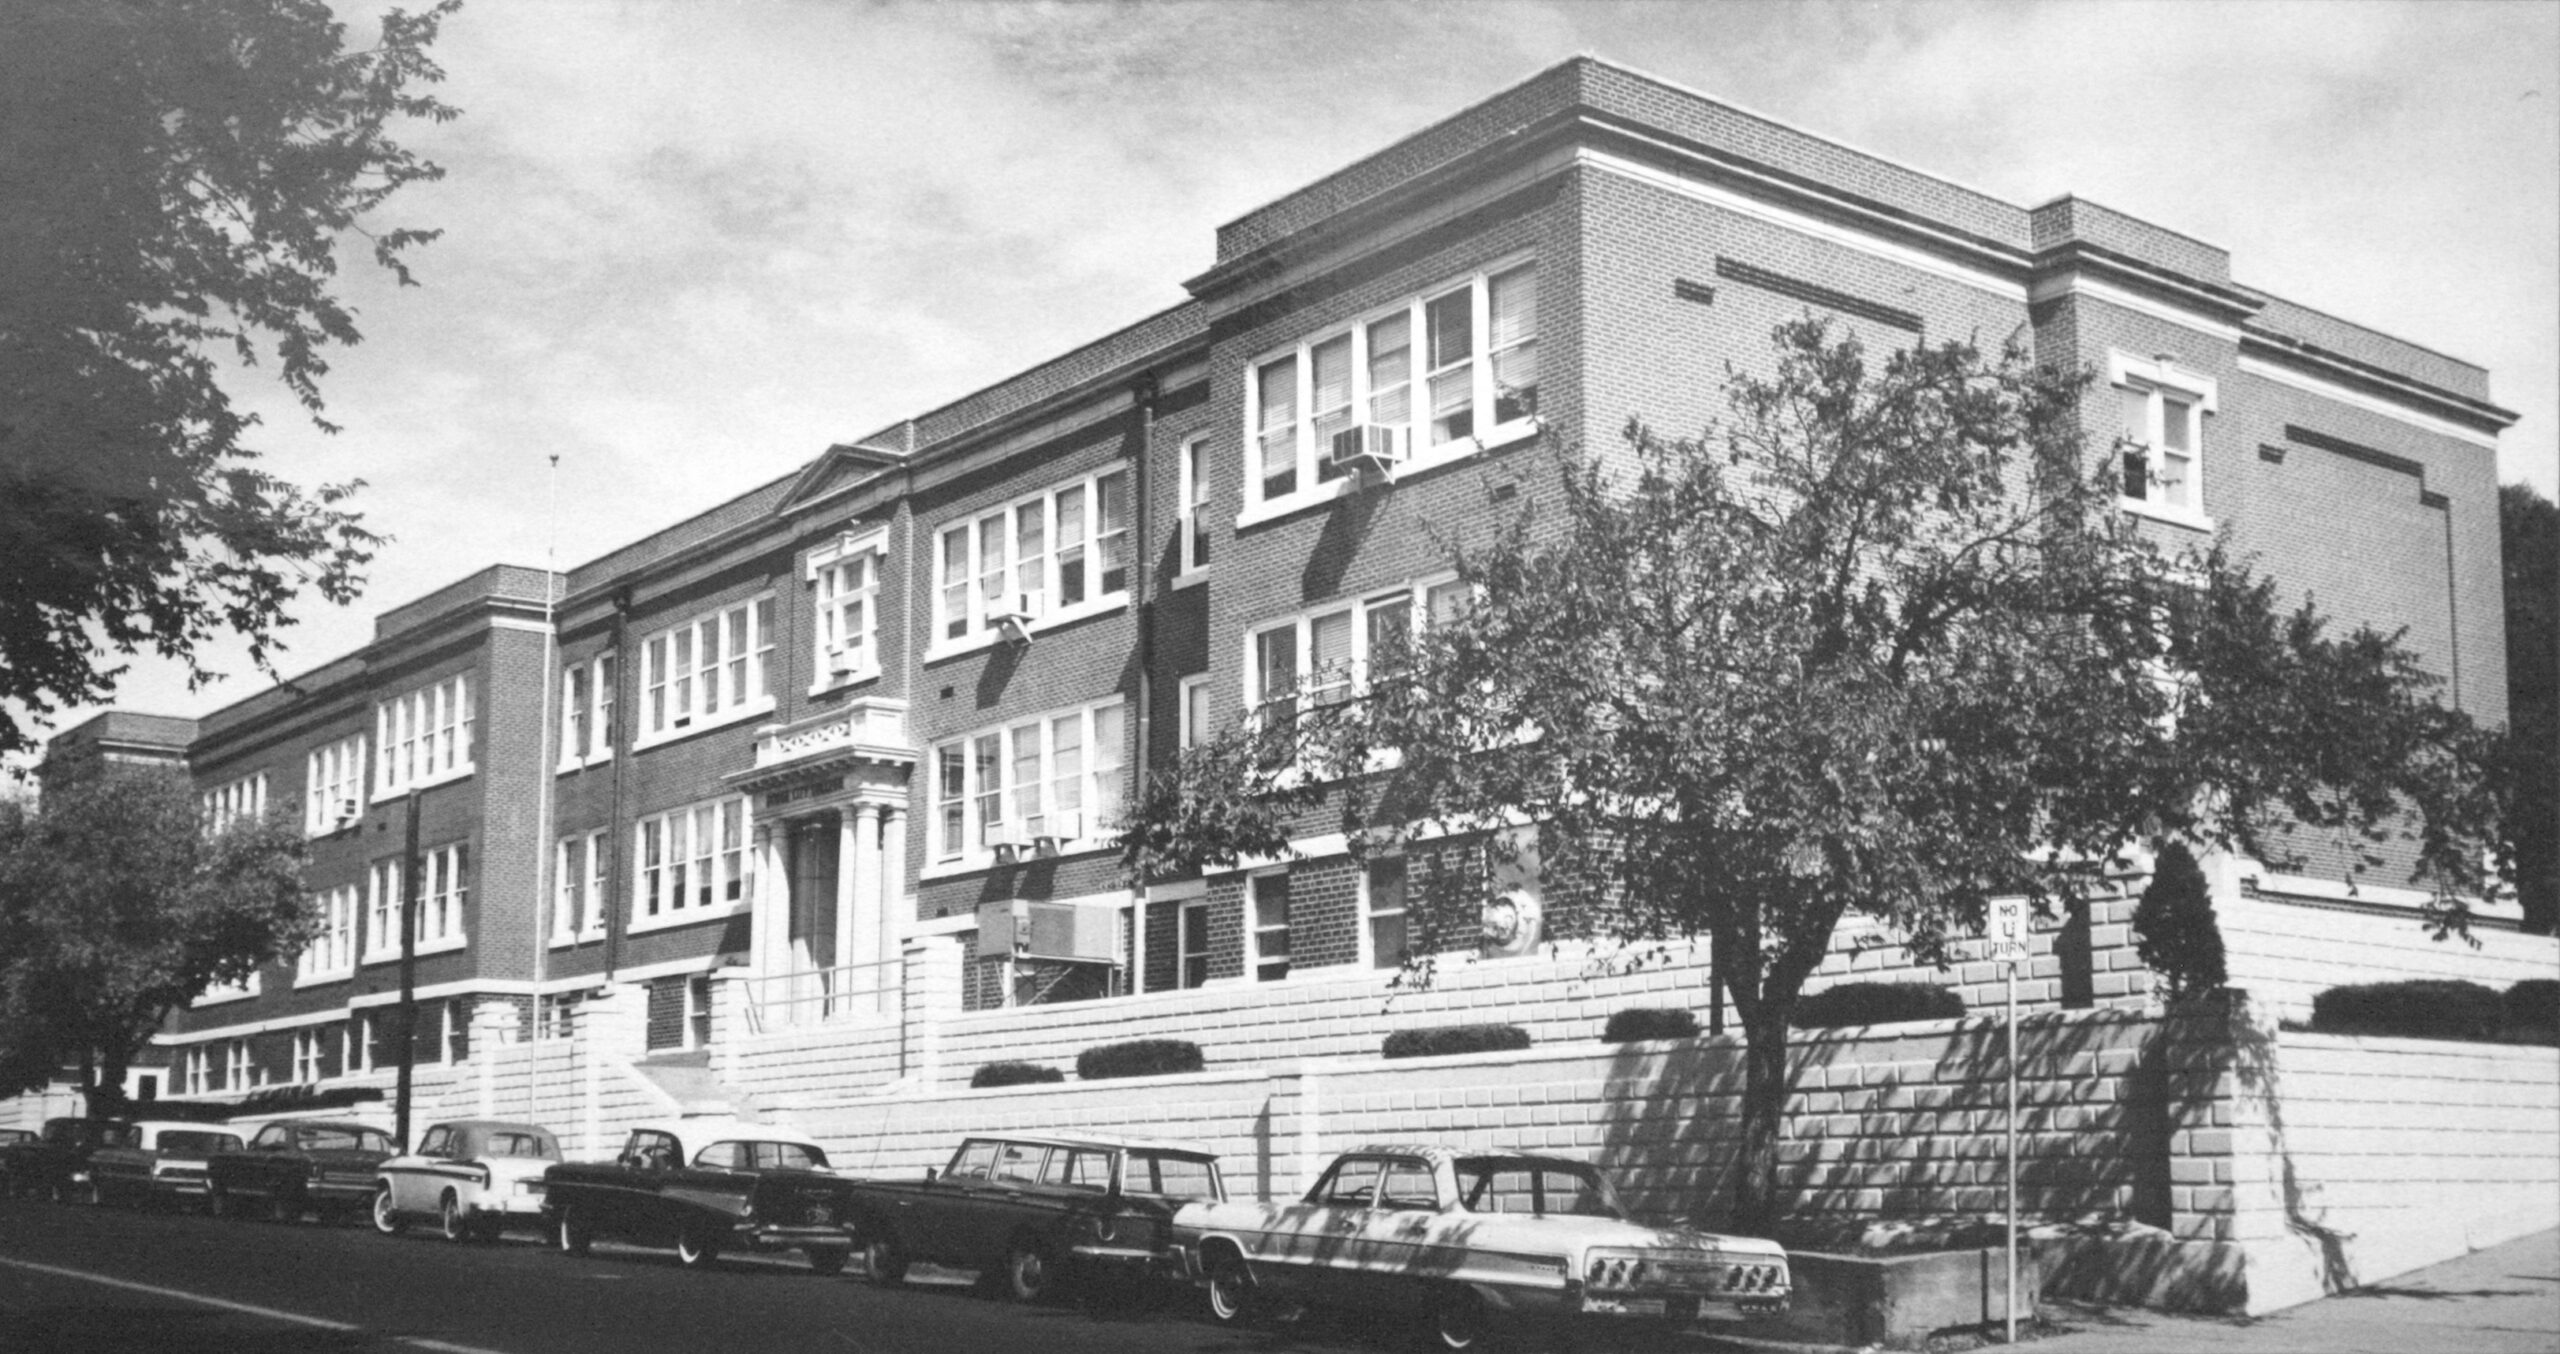 Building at 1000 N. Second Ave. as it appeared in the 1950s